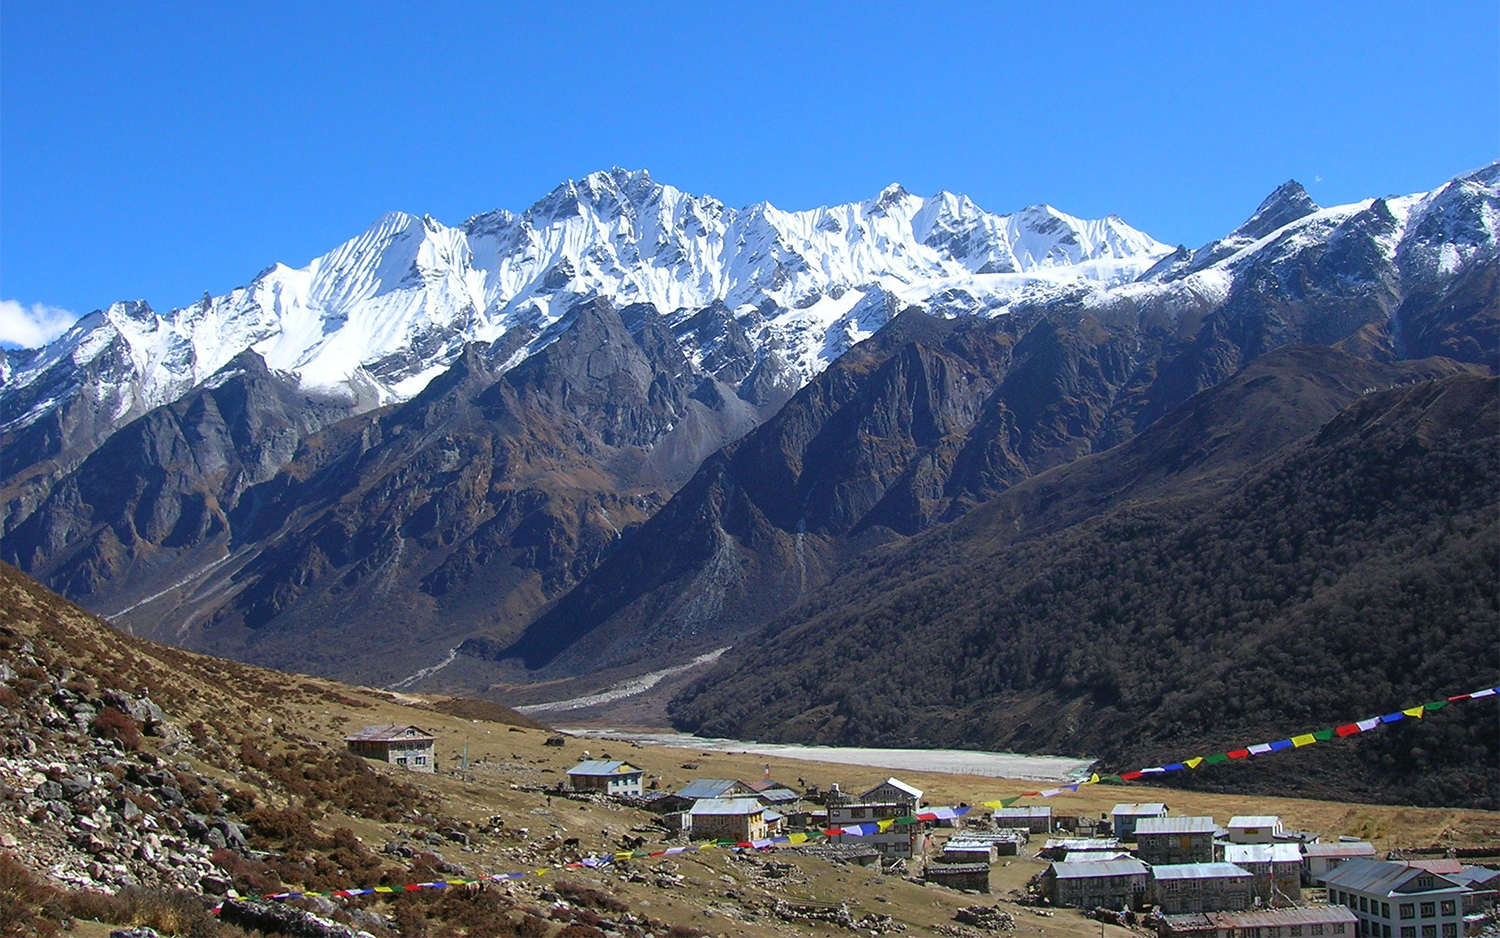 Langtang Valley Helicopter Tour